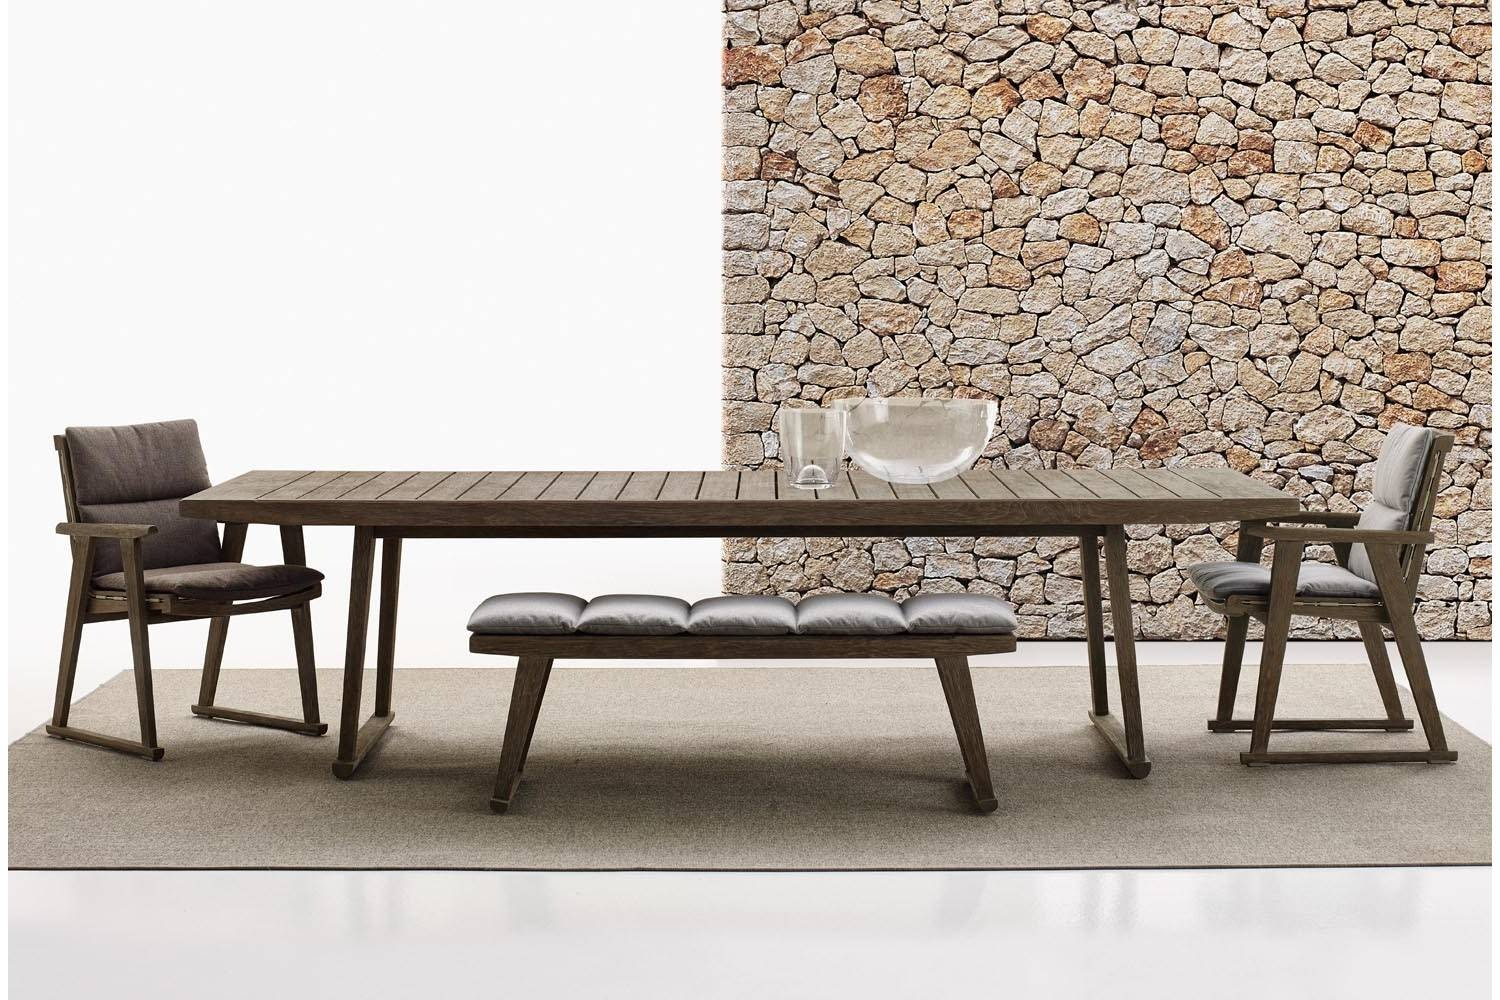 Gio Table by Antonio Citterio for B&B Italia